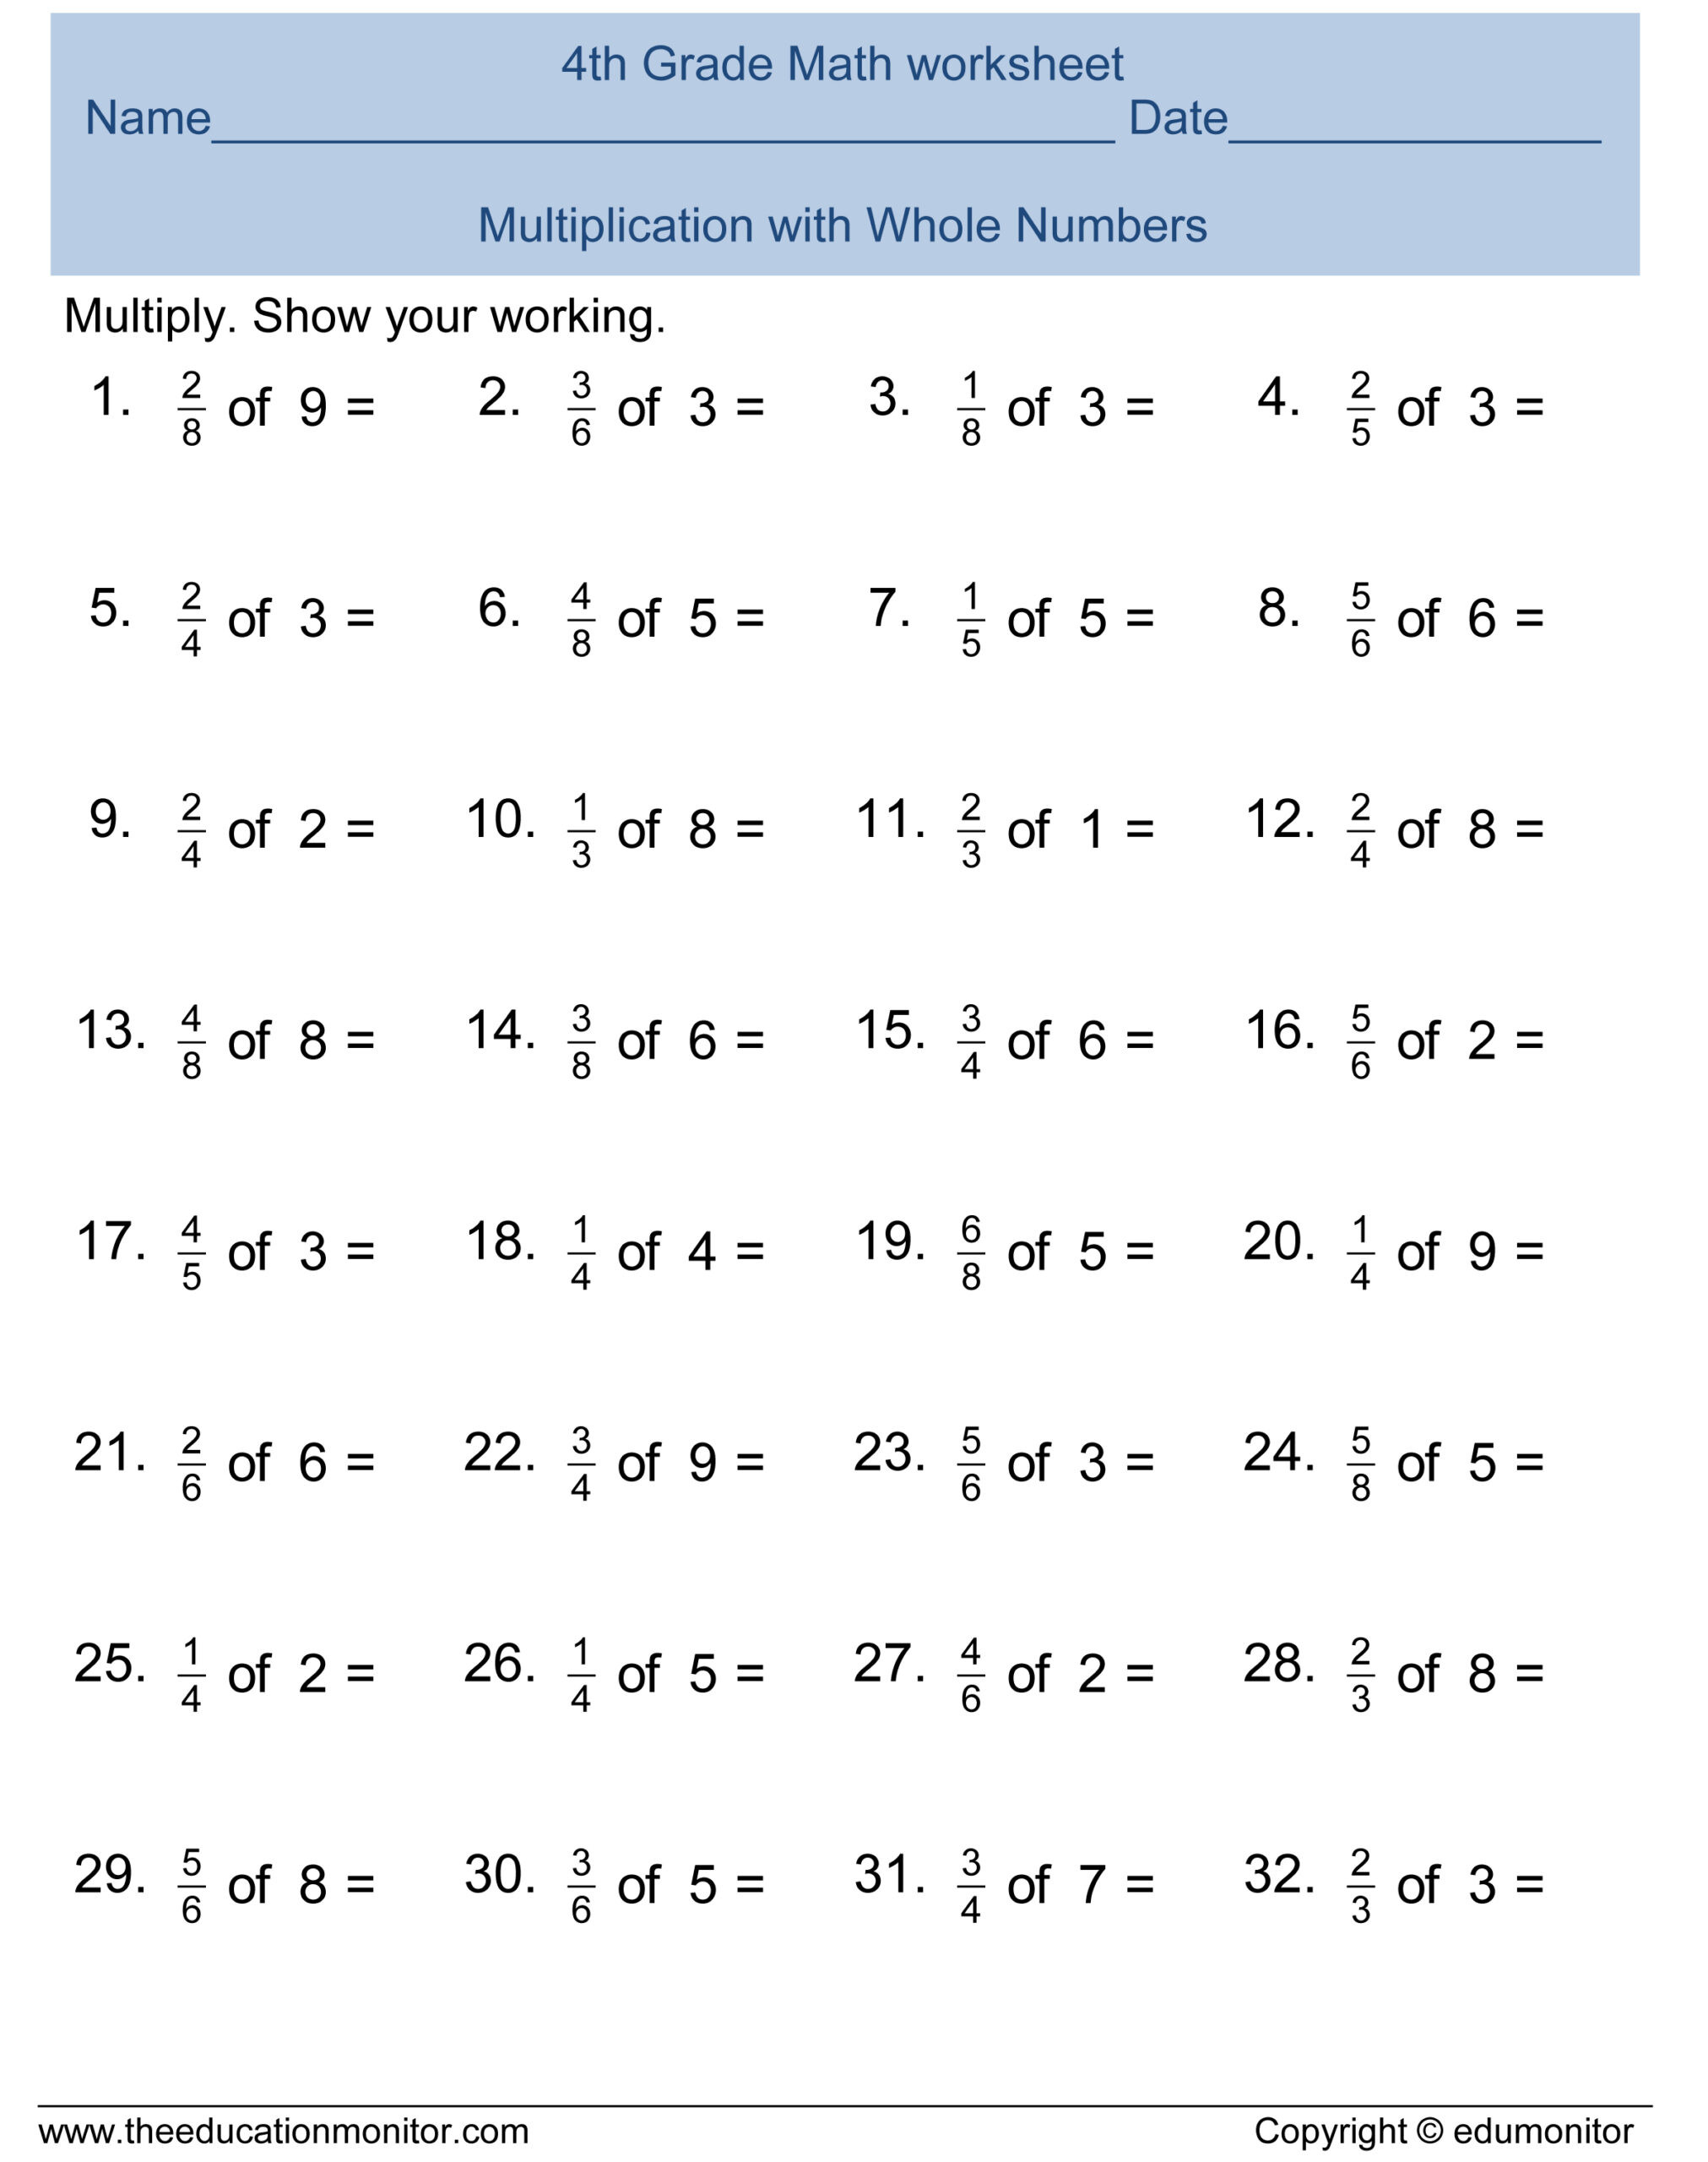 51 4th Grade Fractions Worksheets Image Ideas – Doctorbedancing